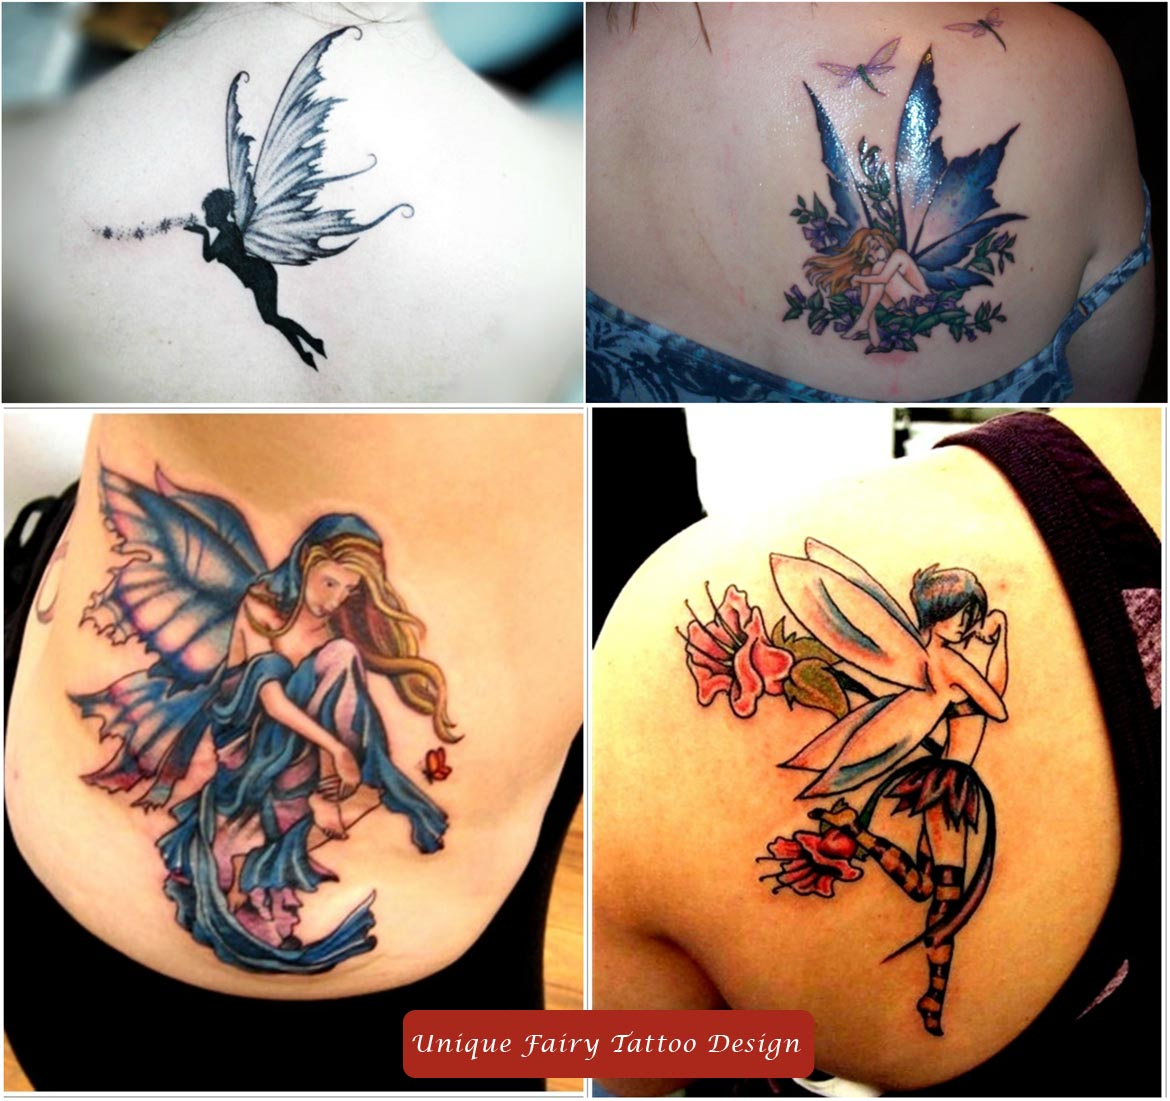 Unique Fairy Tattoo Design